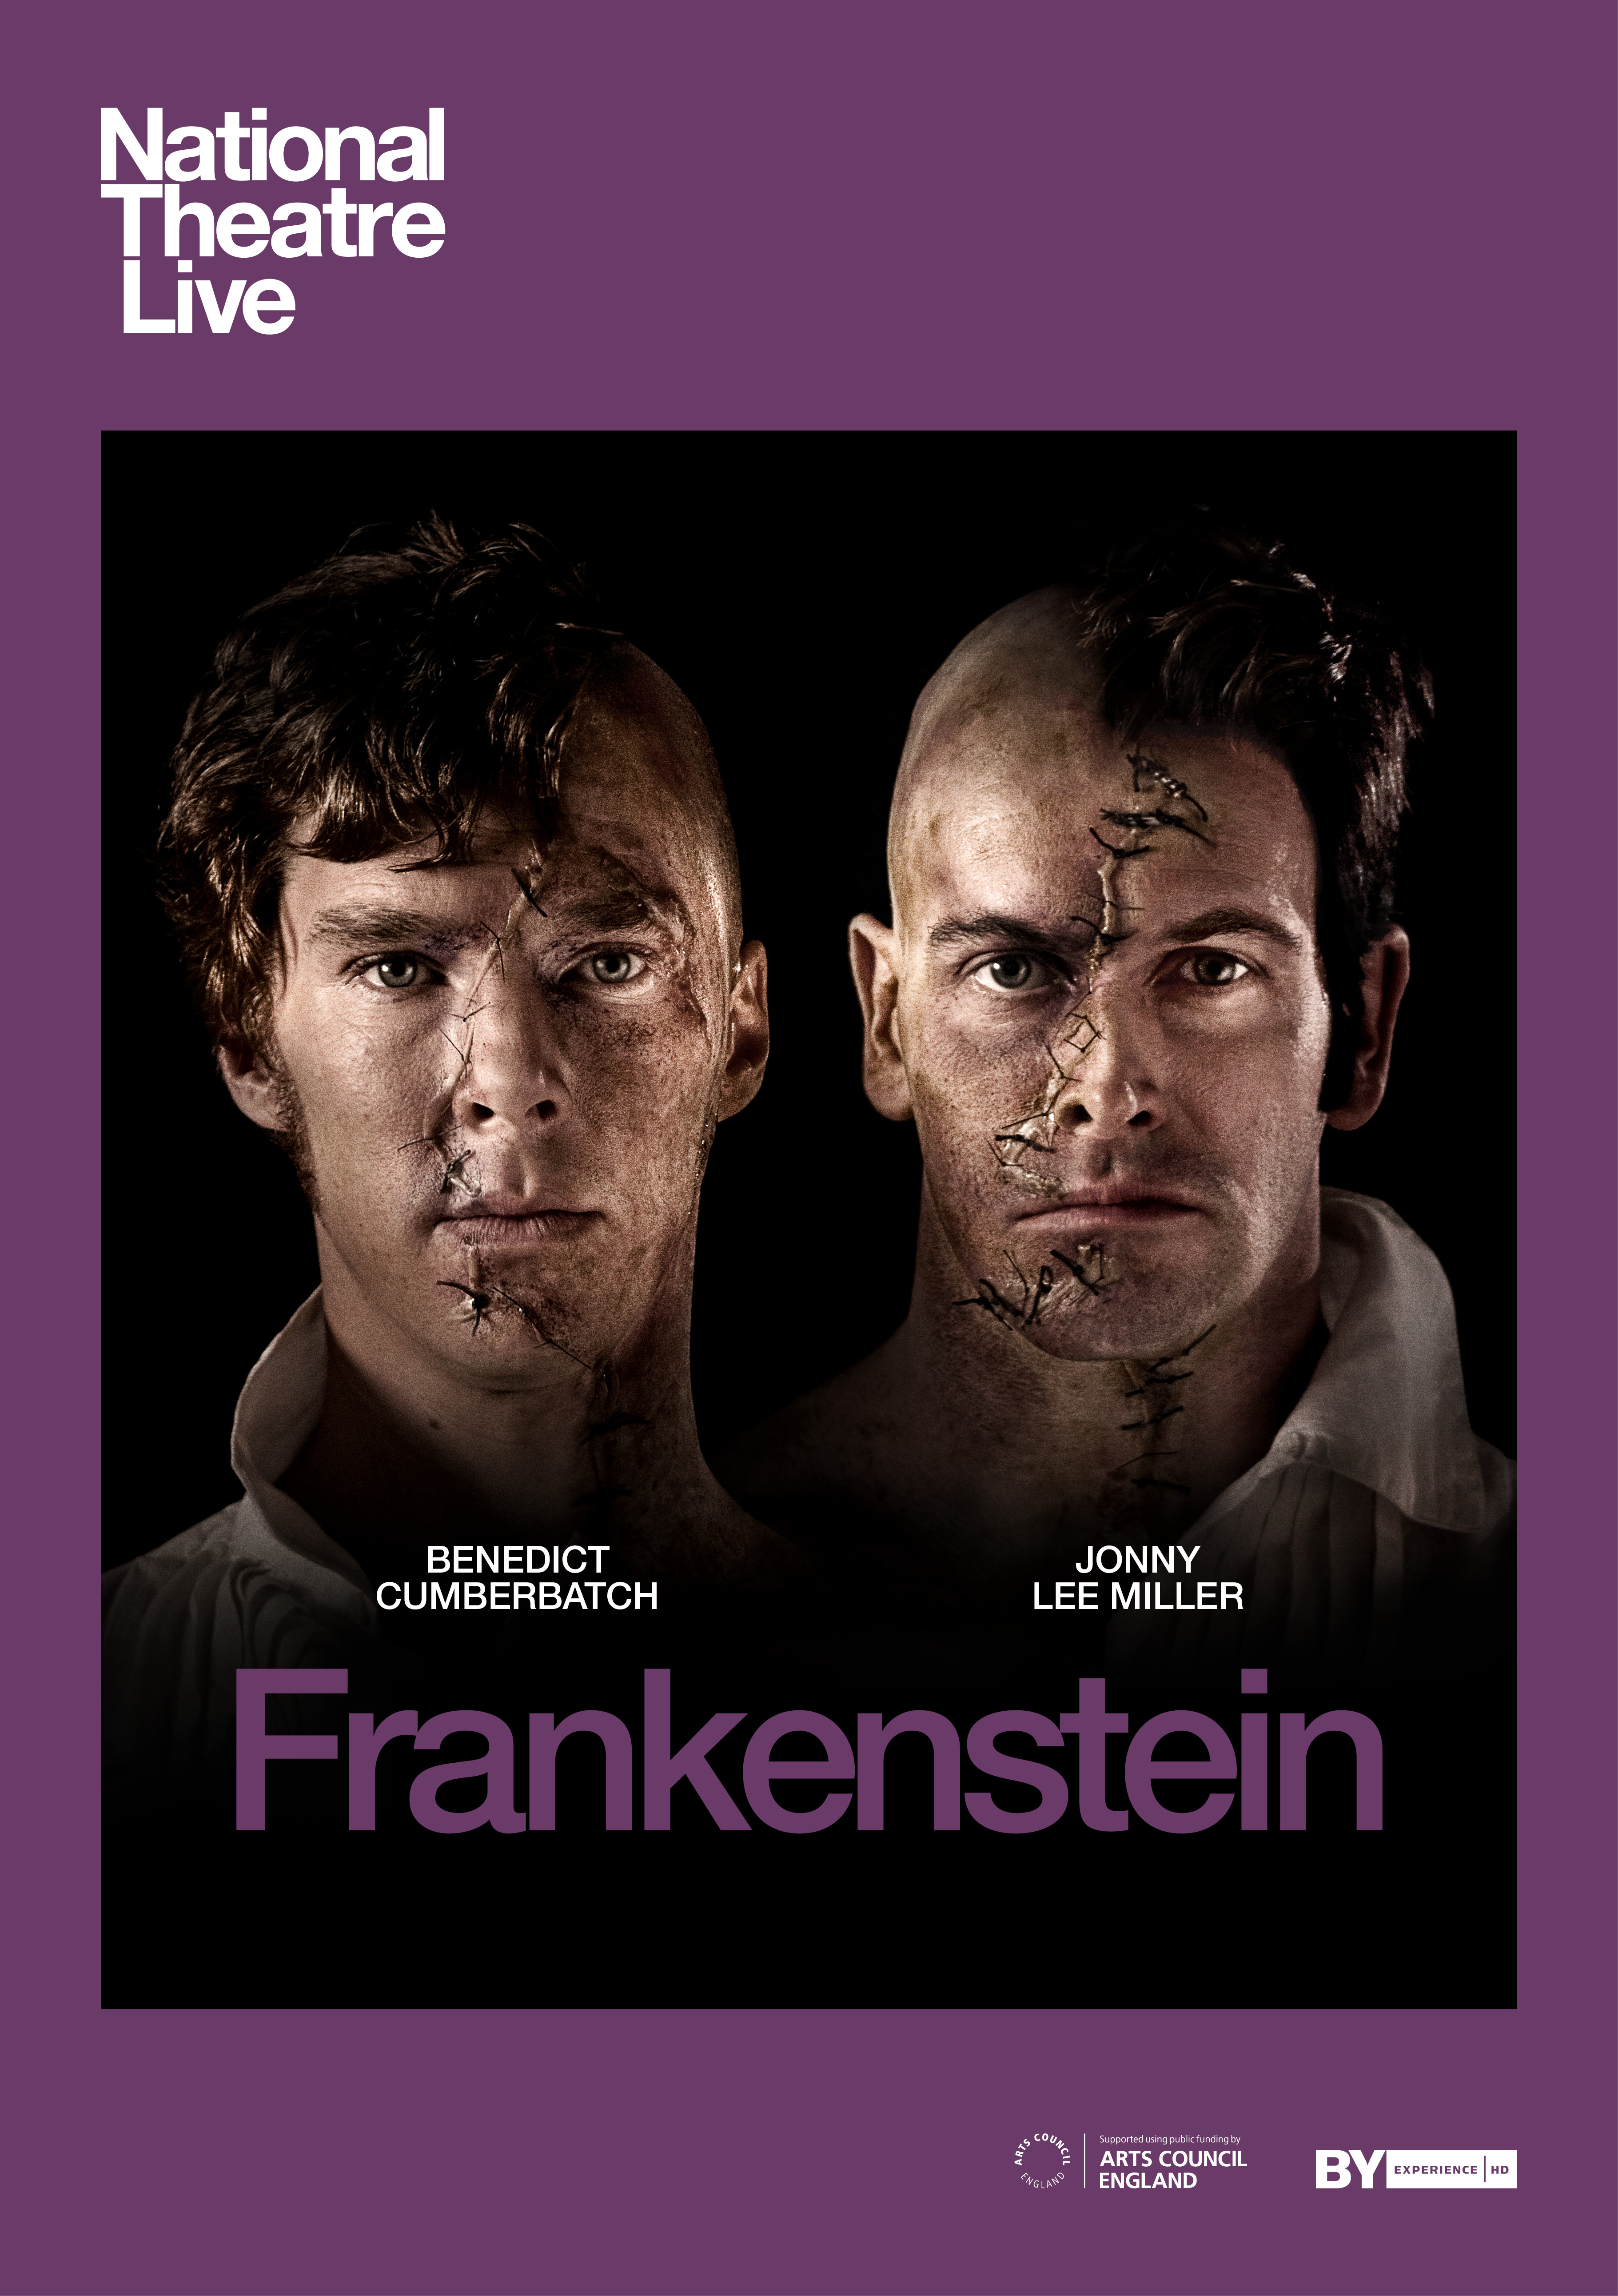 National Theatre Live: Frankenstein Encore 2018 (Cumberbatch as Creature)